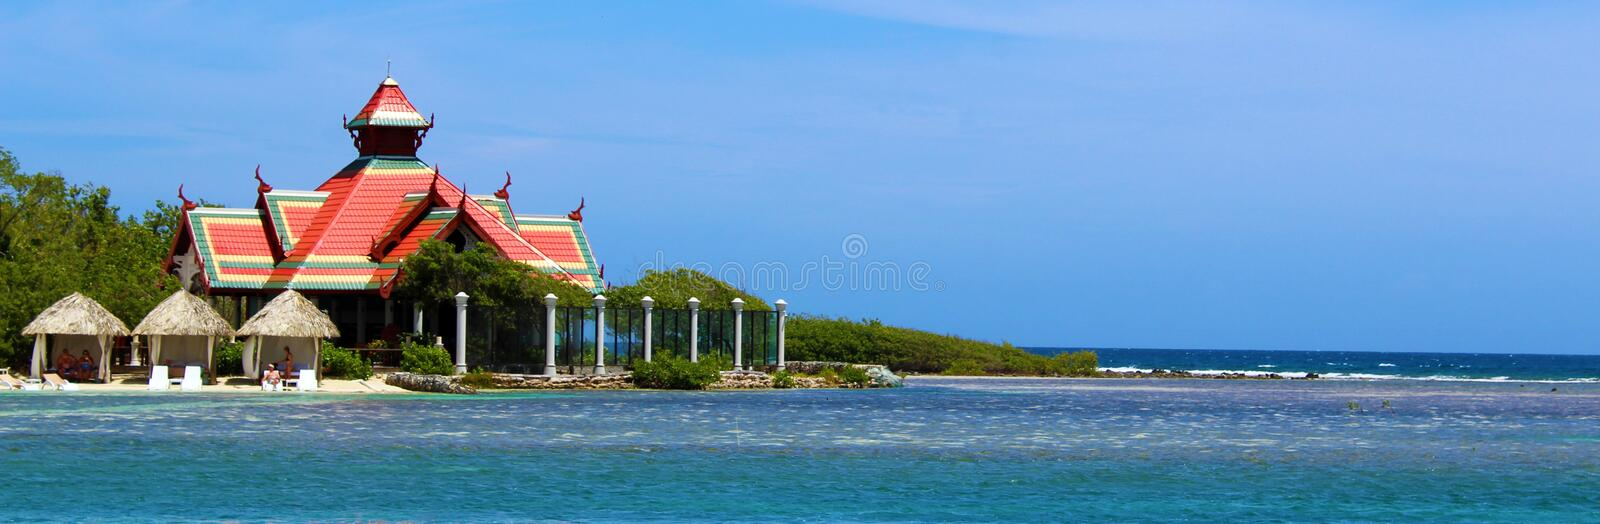 Over the water luxury restaurant Jamaica Maldives royalty free stock image